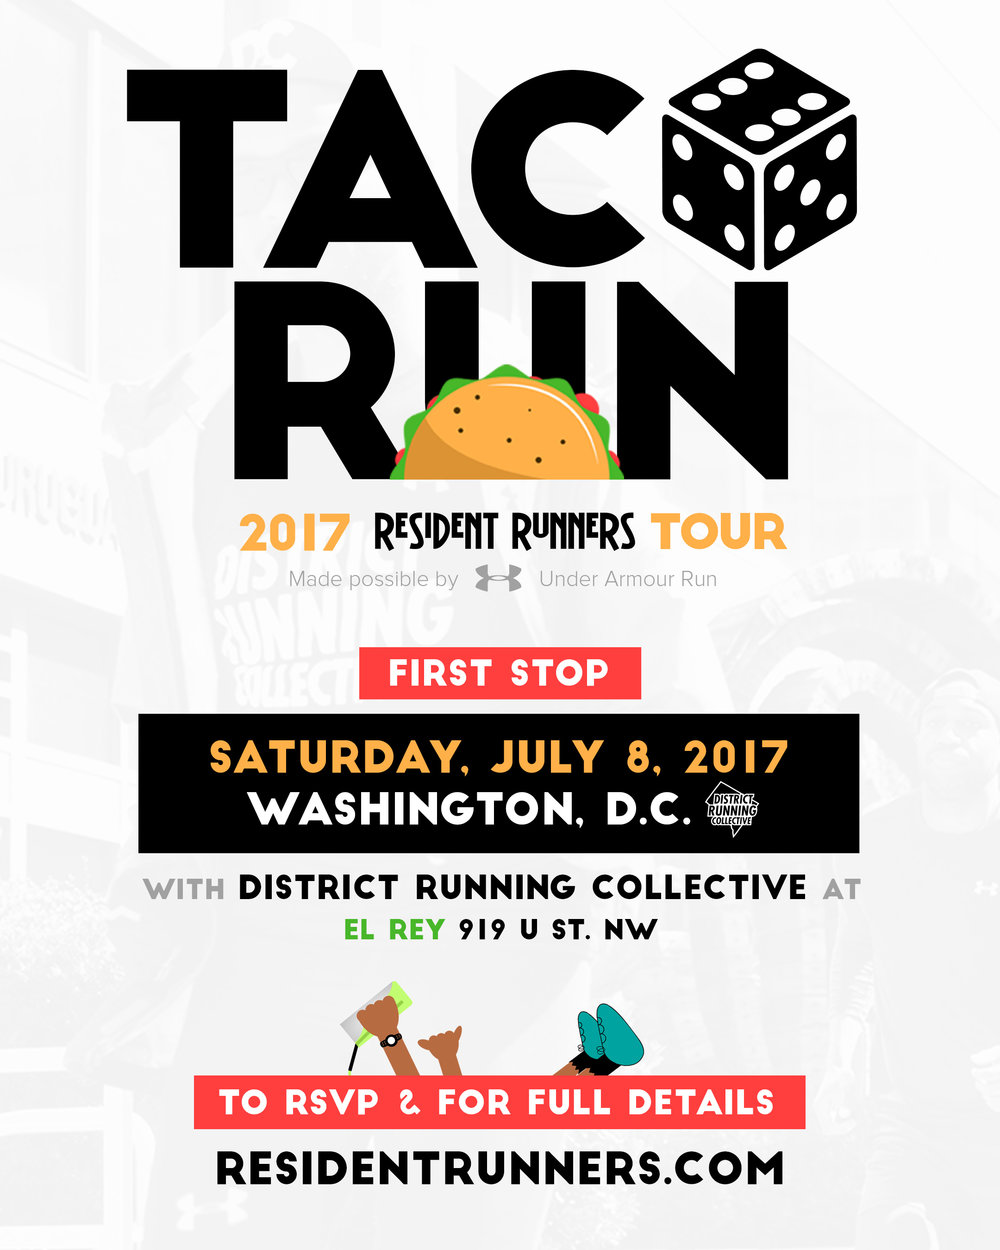 taco_run_tour_flyer_DC_vf.jpg